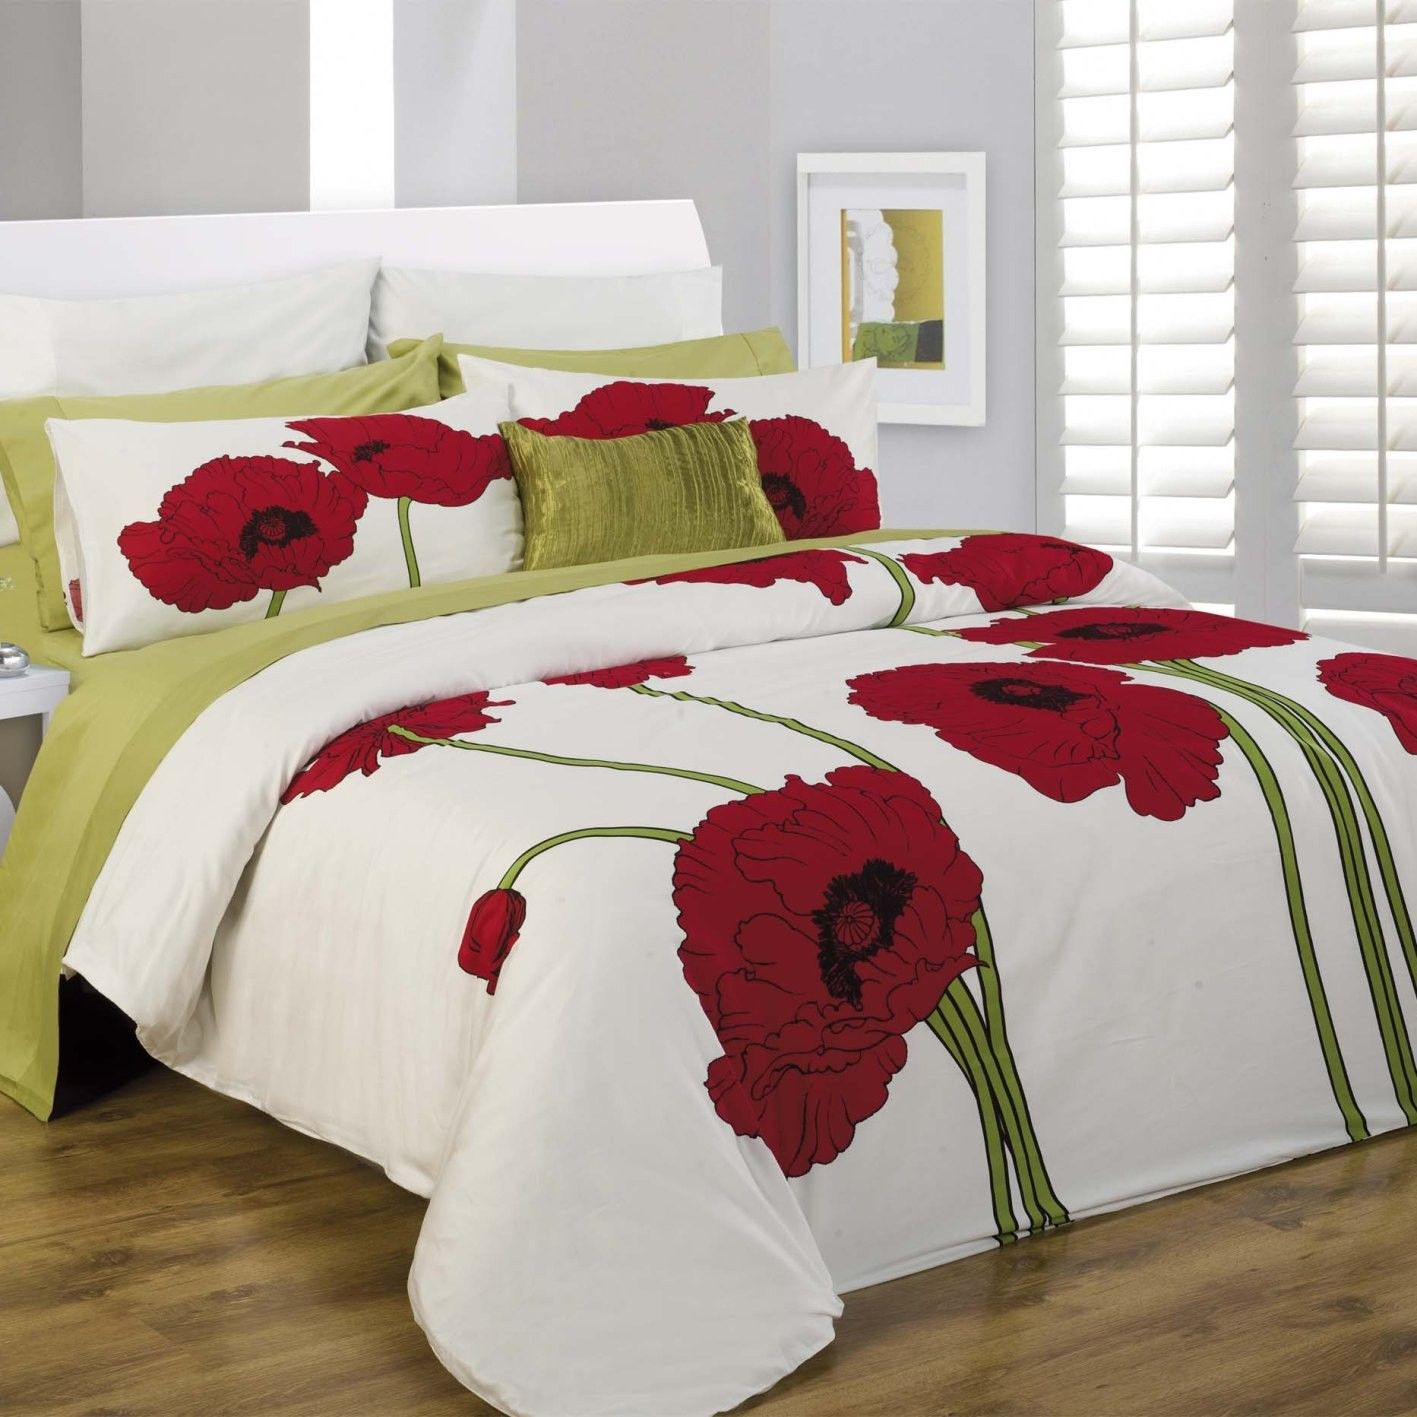 Bedding Asian poppy